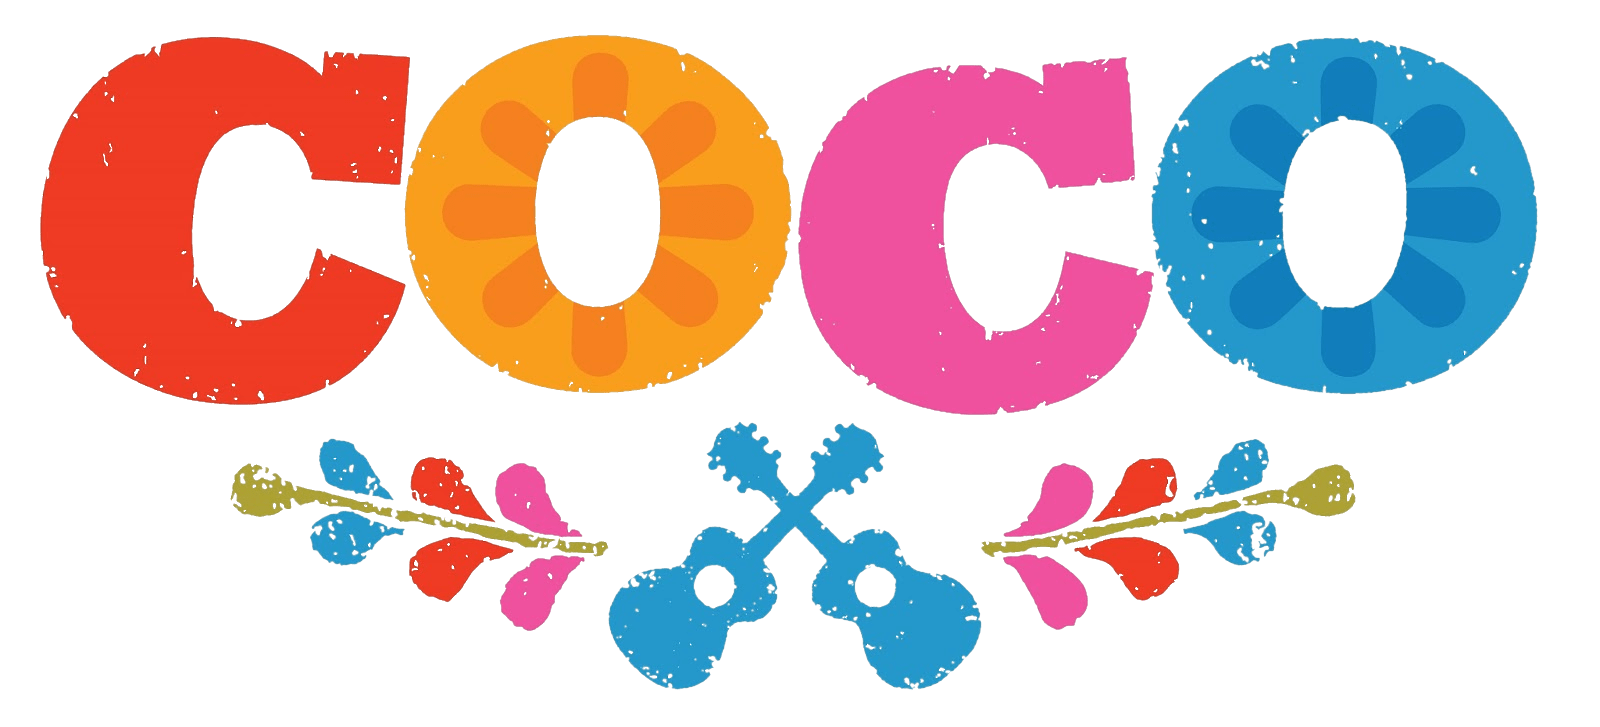 Coco clipart png. Logo transparent stickpng